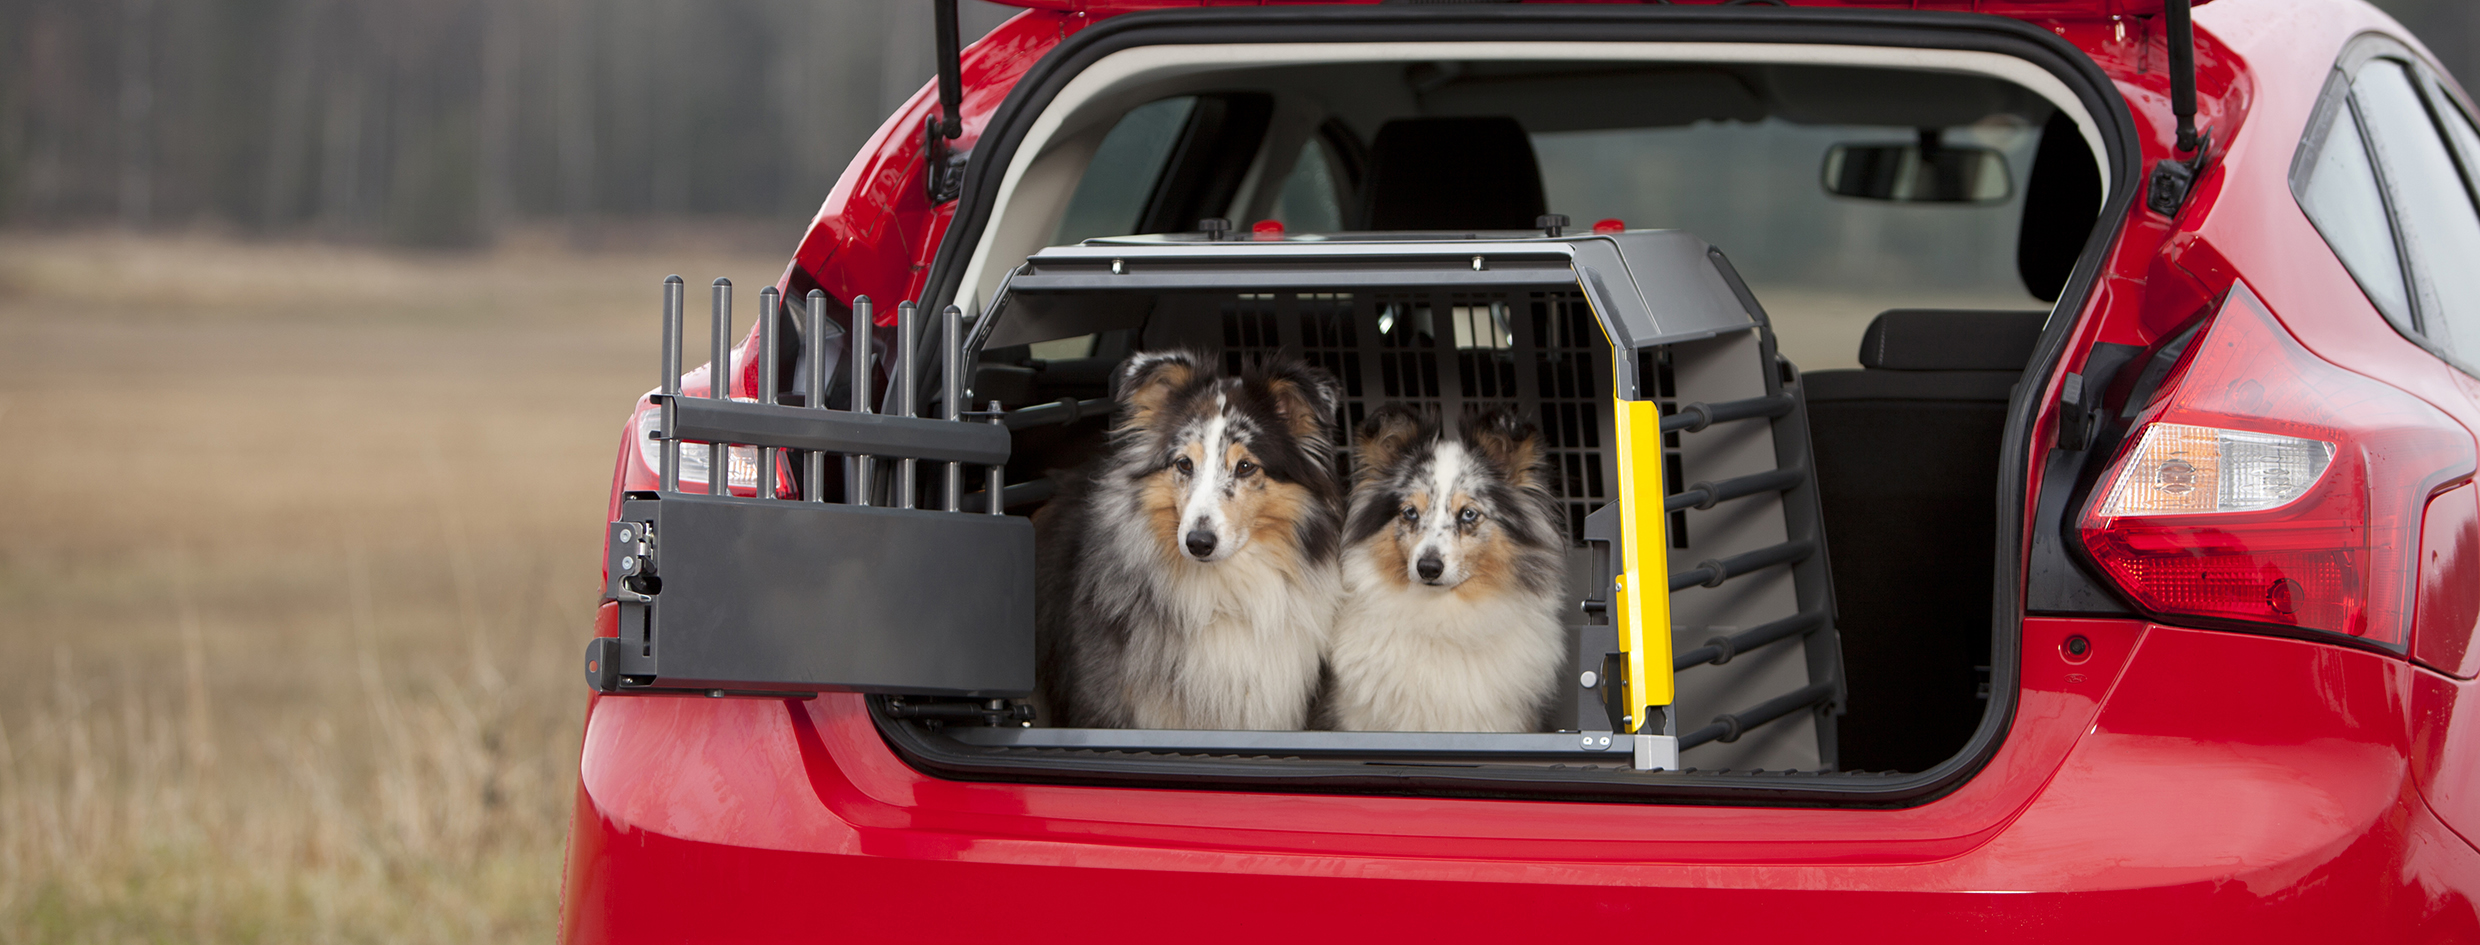 3G variocage compact single_xl_autumn_dogs car_21X10cm_print.jpg